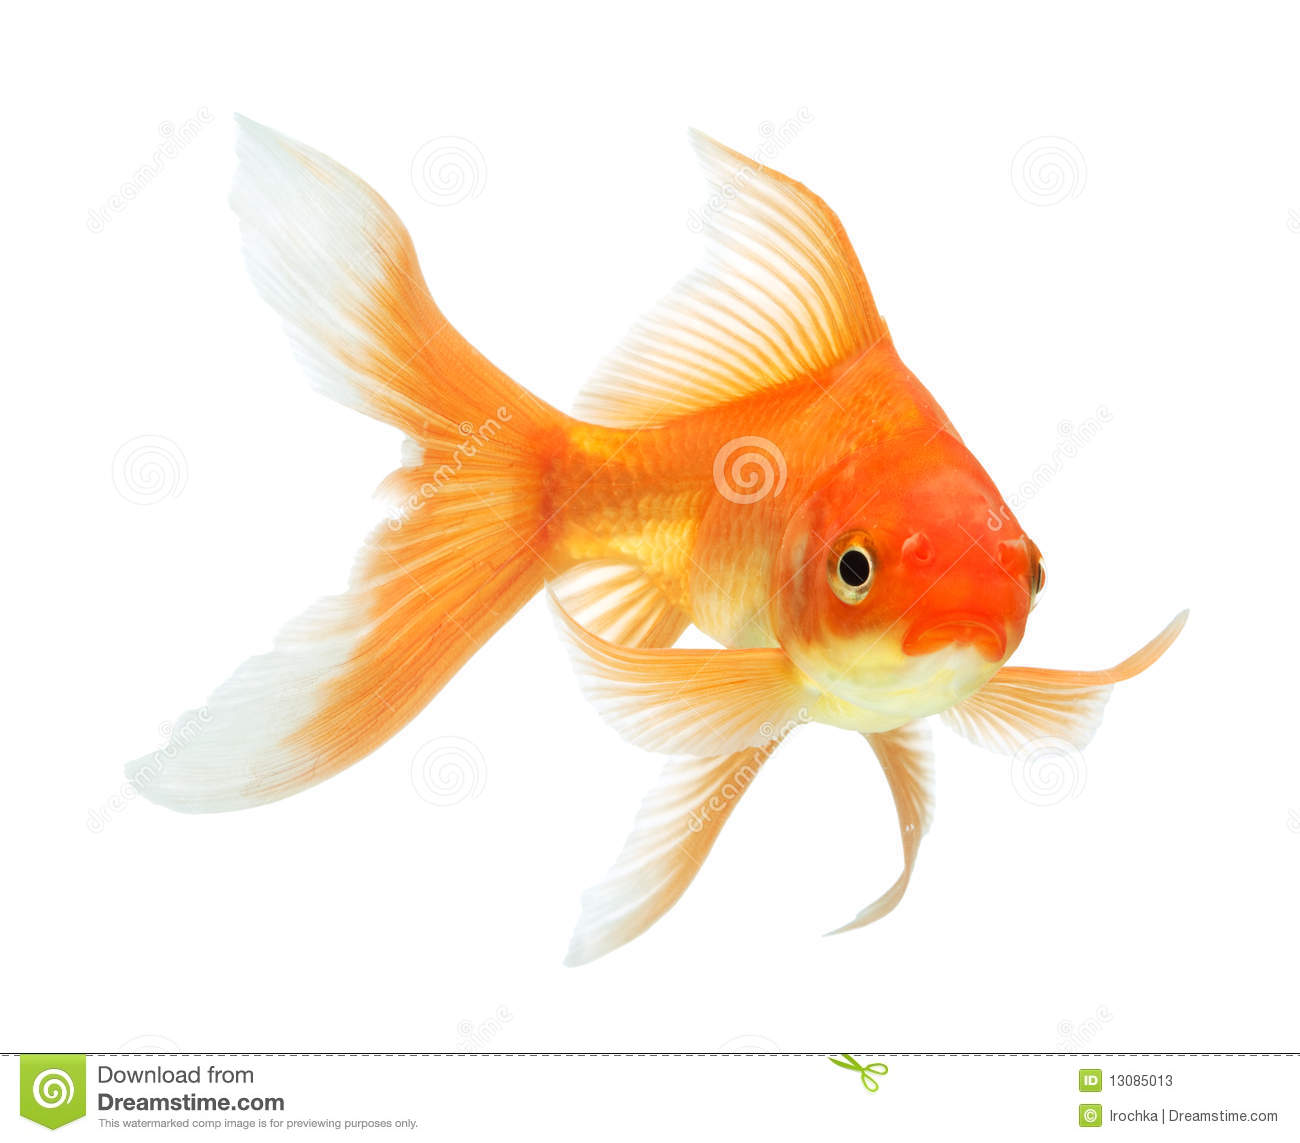 Gold fish animated wallpaper - photo#27